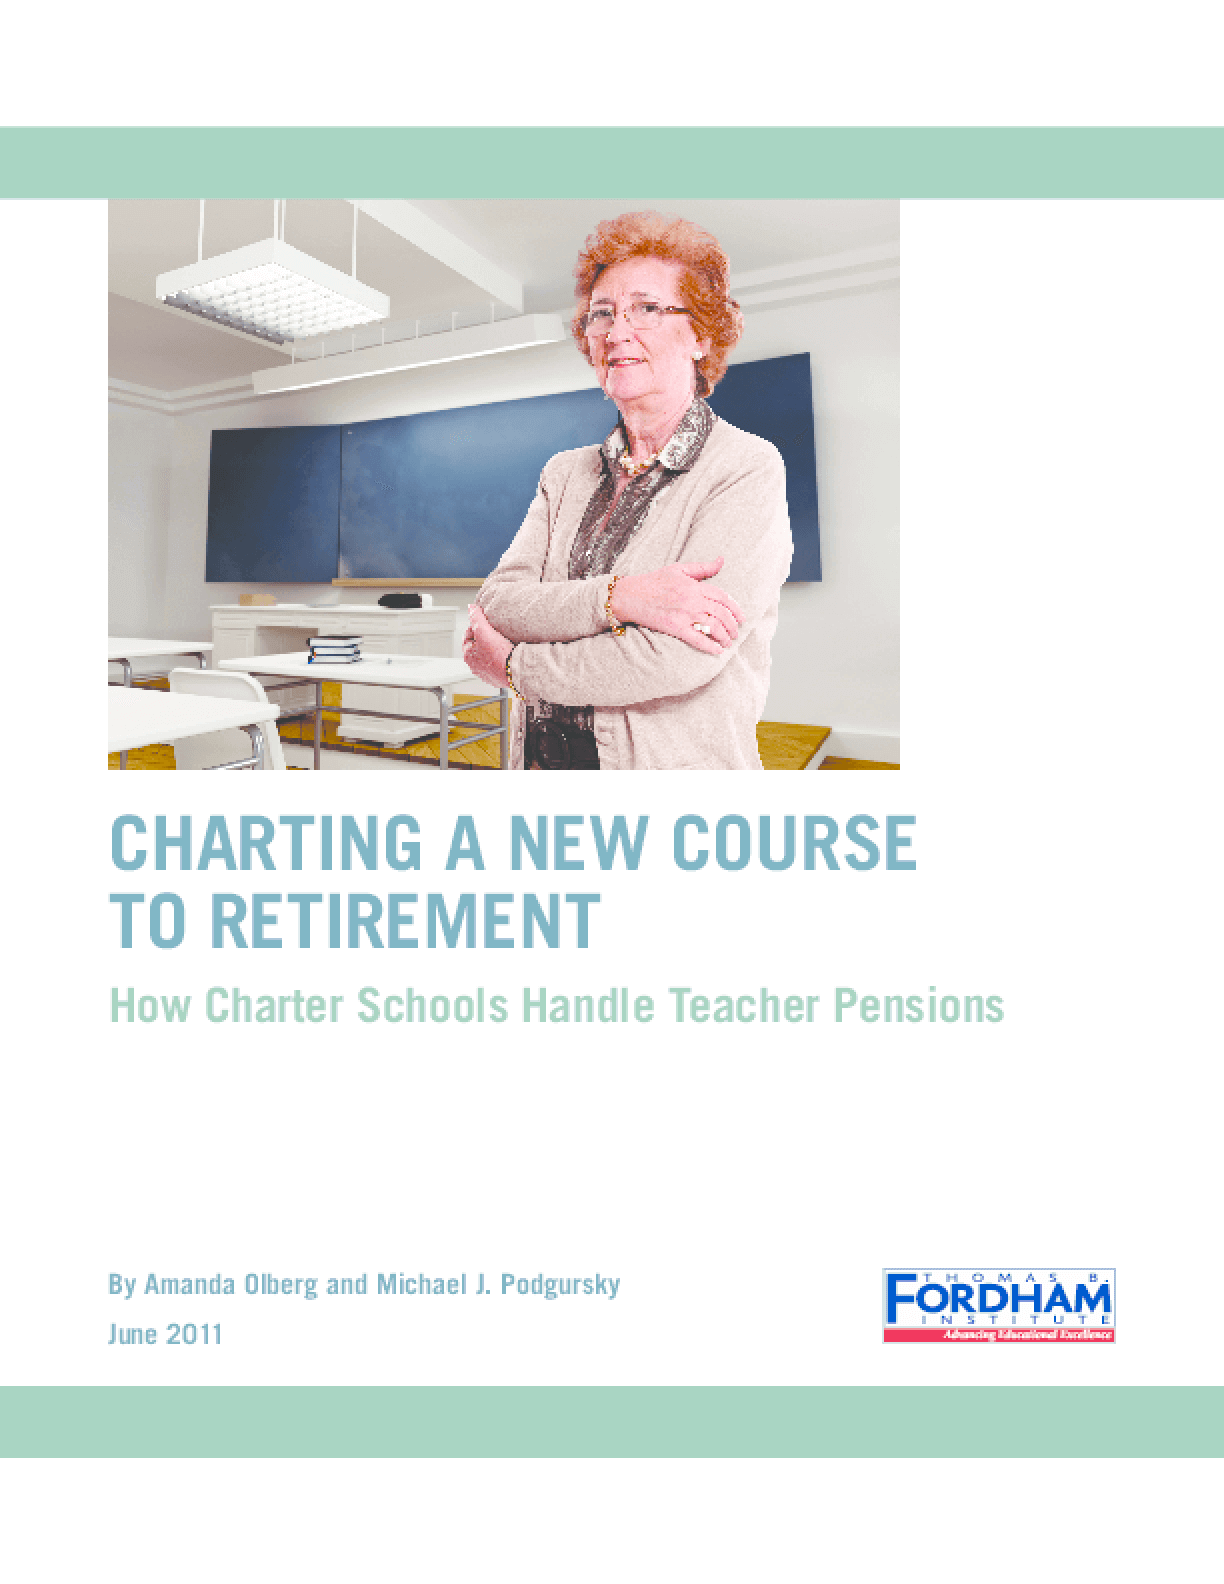 Charting a New Course to Retirement: How Charter Schools Handle Teacher Pensions